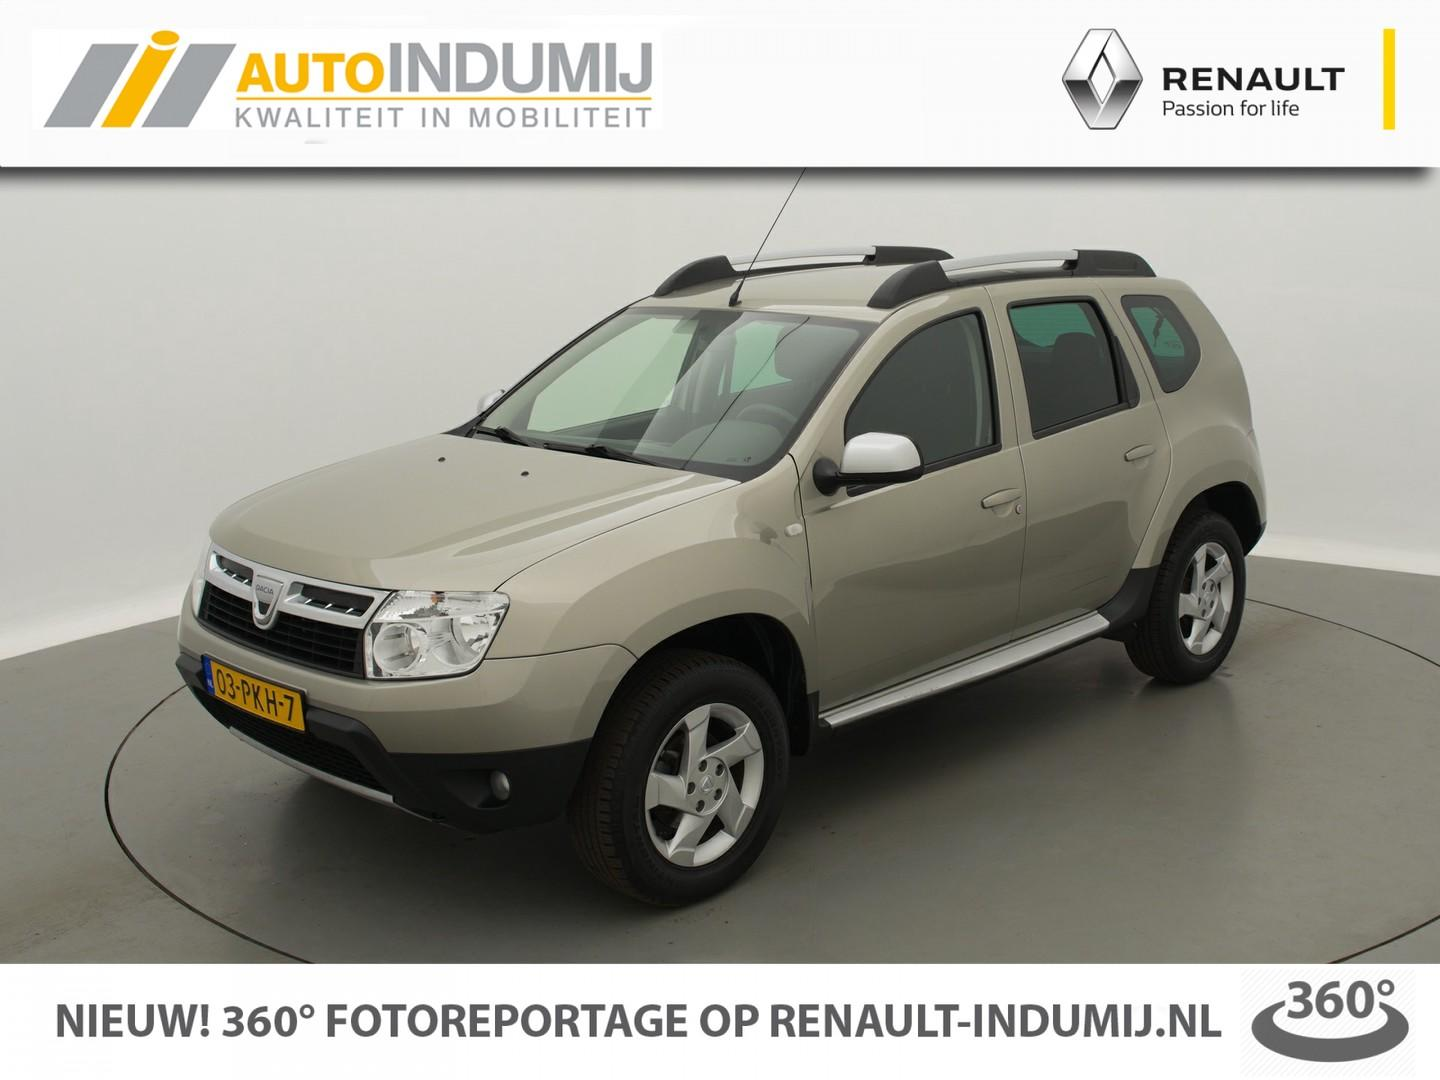 Dacia Duster 1.6 lauréate 2wd incl. winterset! // airco / trekhaak